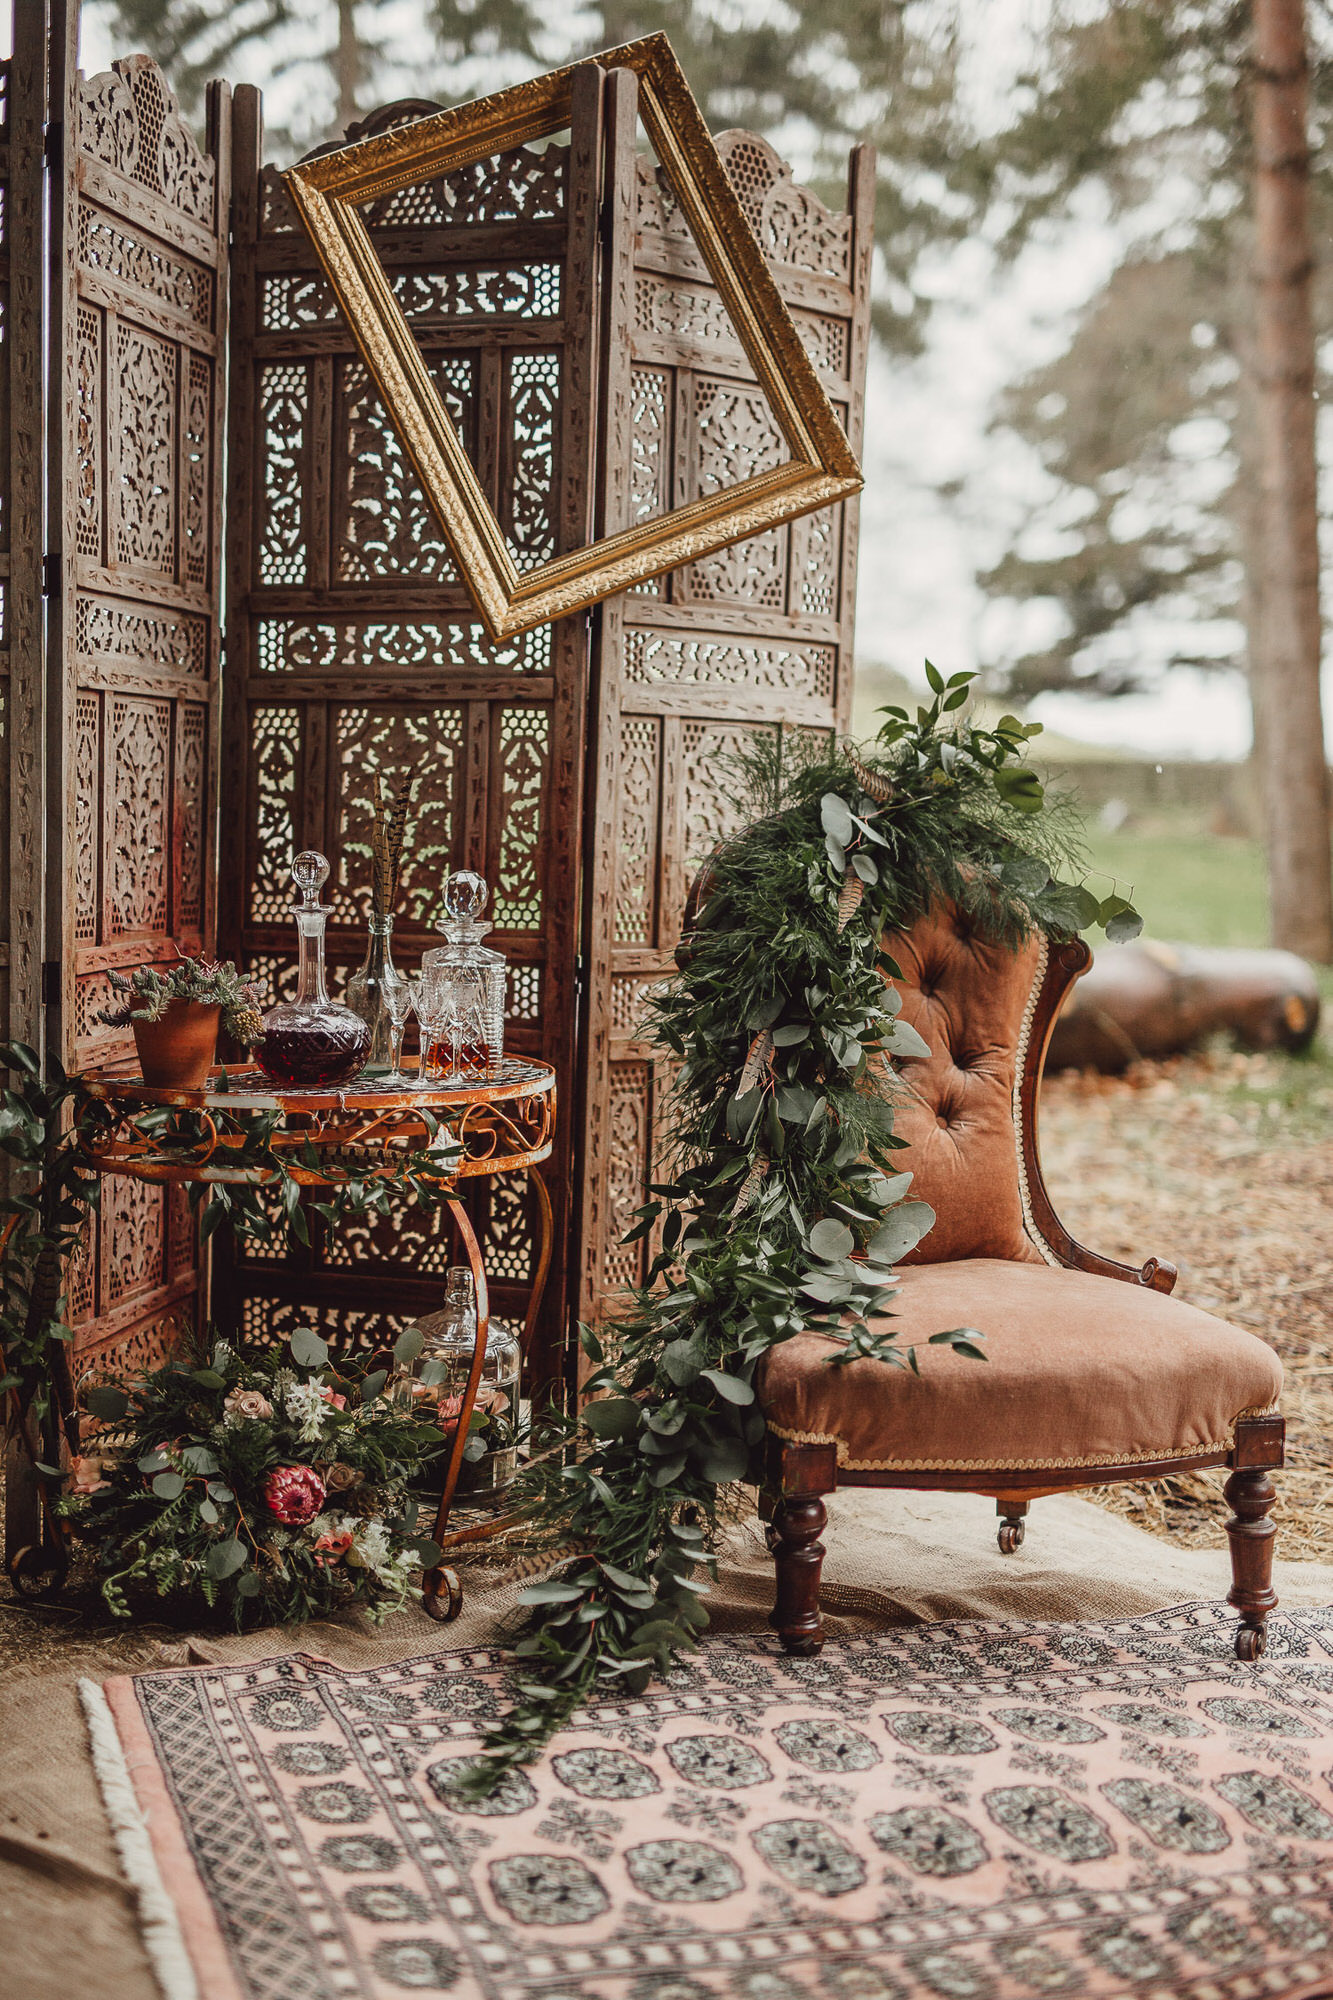 country boho luxe wedding norfolk whiskey bar and chair outdoors